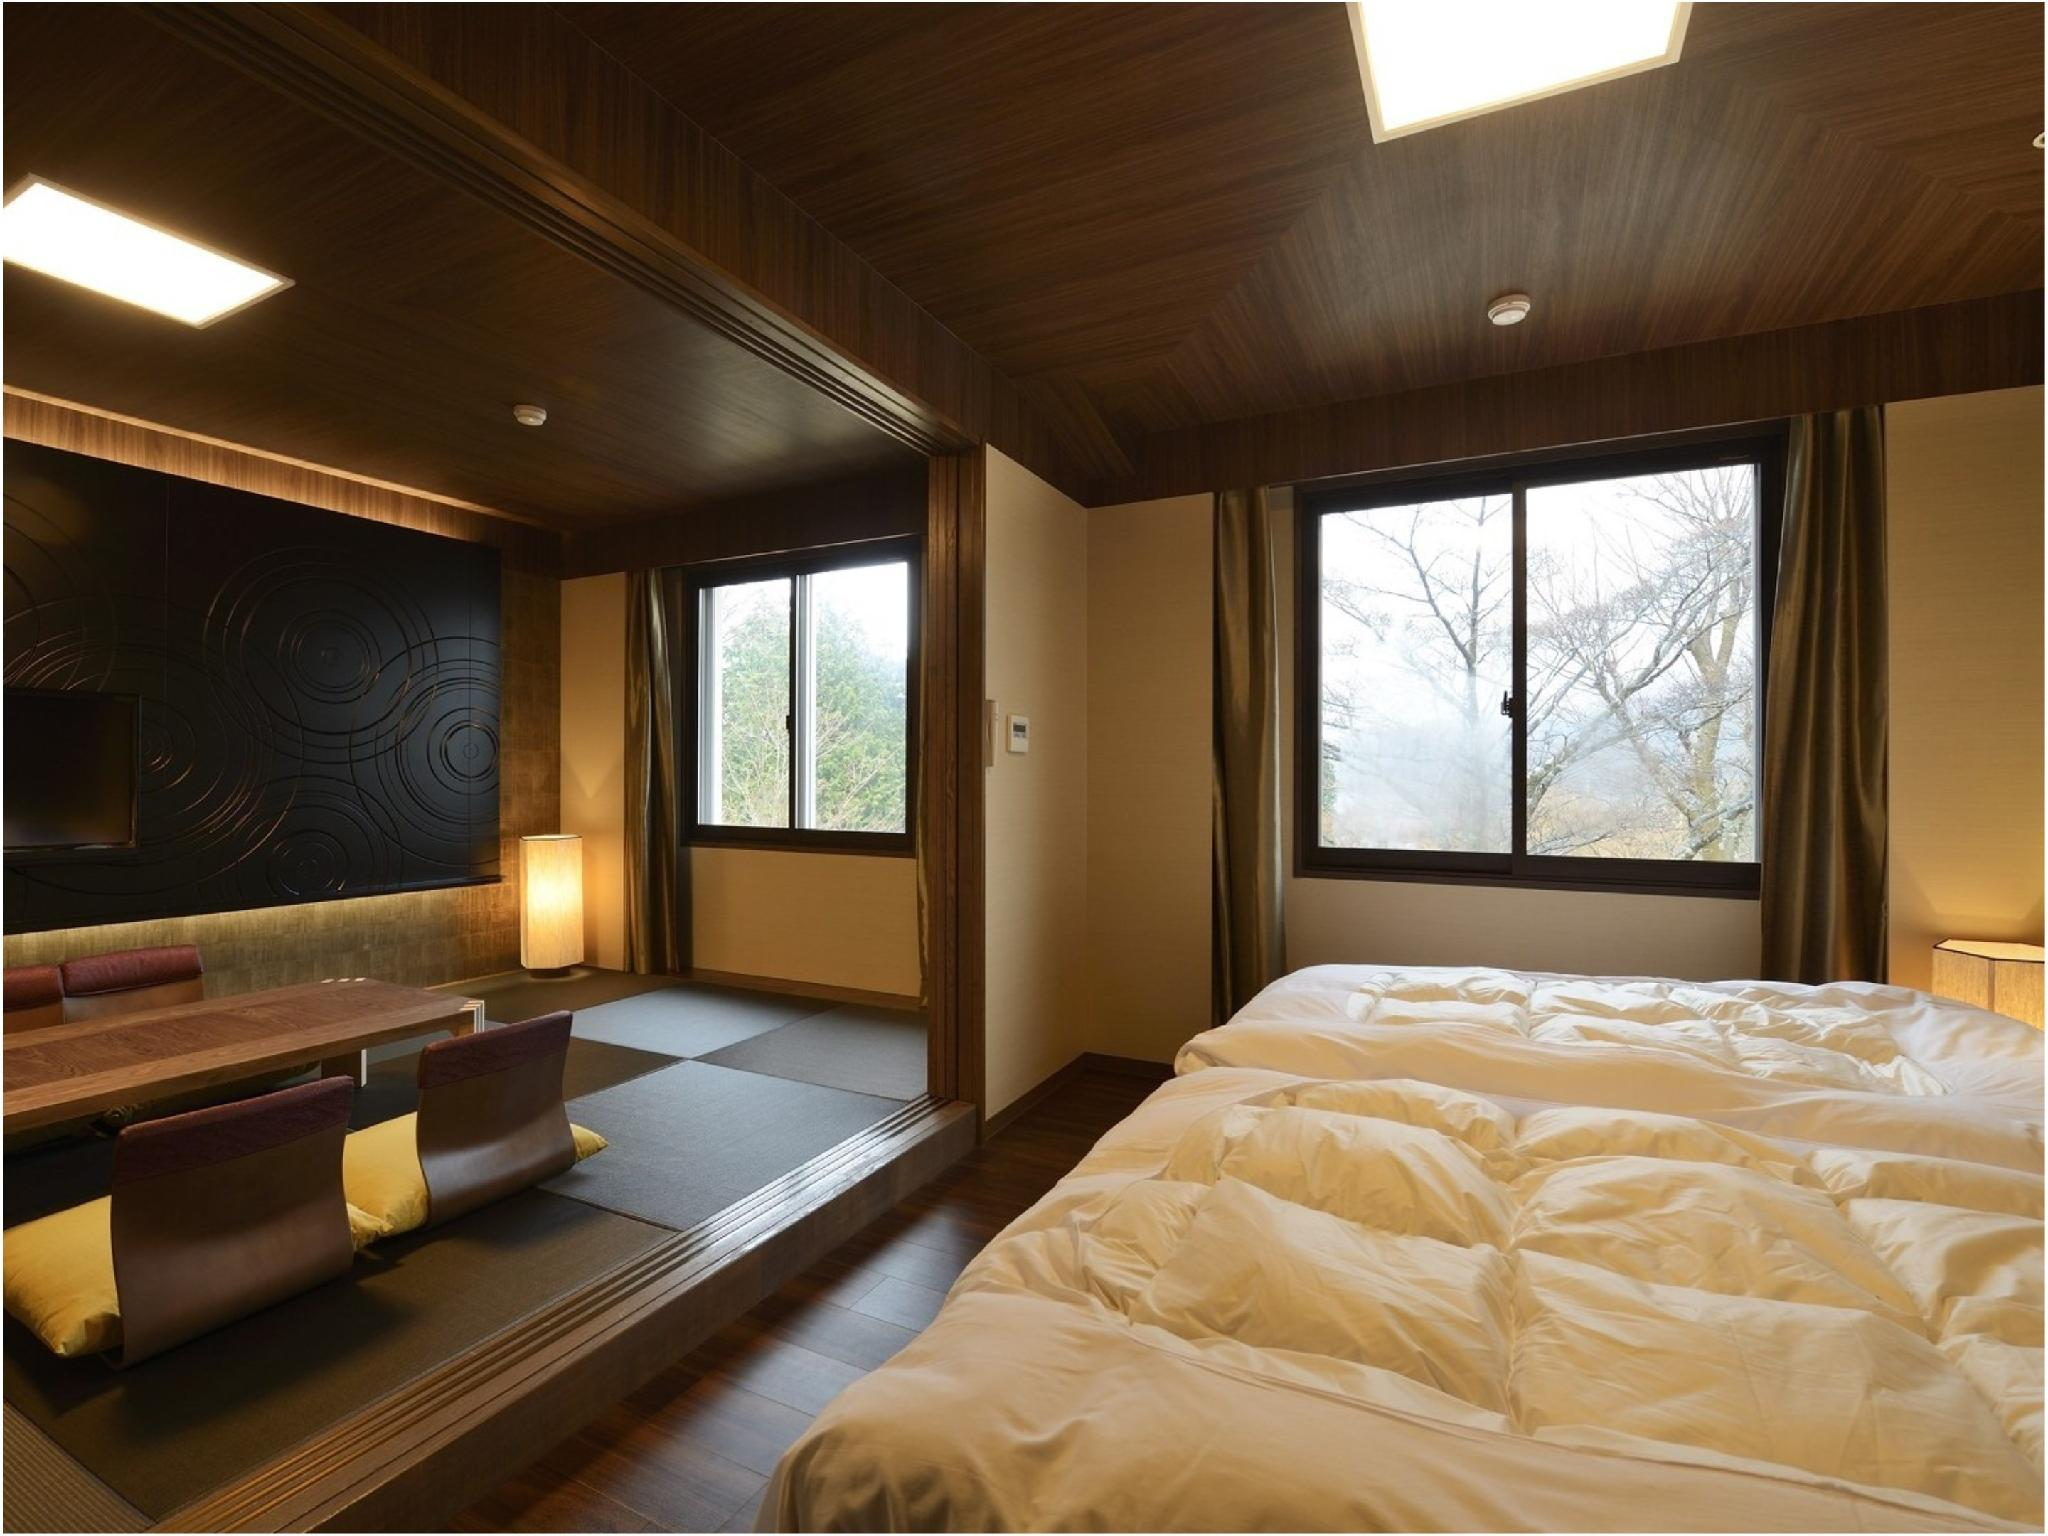 特別房(和洋式房)※有廁所 (Special Japanese/Western-style Room *Has toilet)